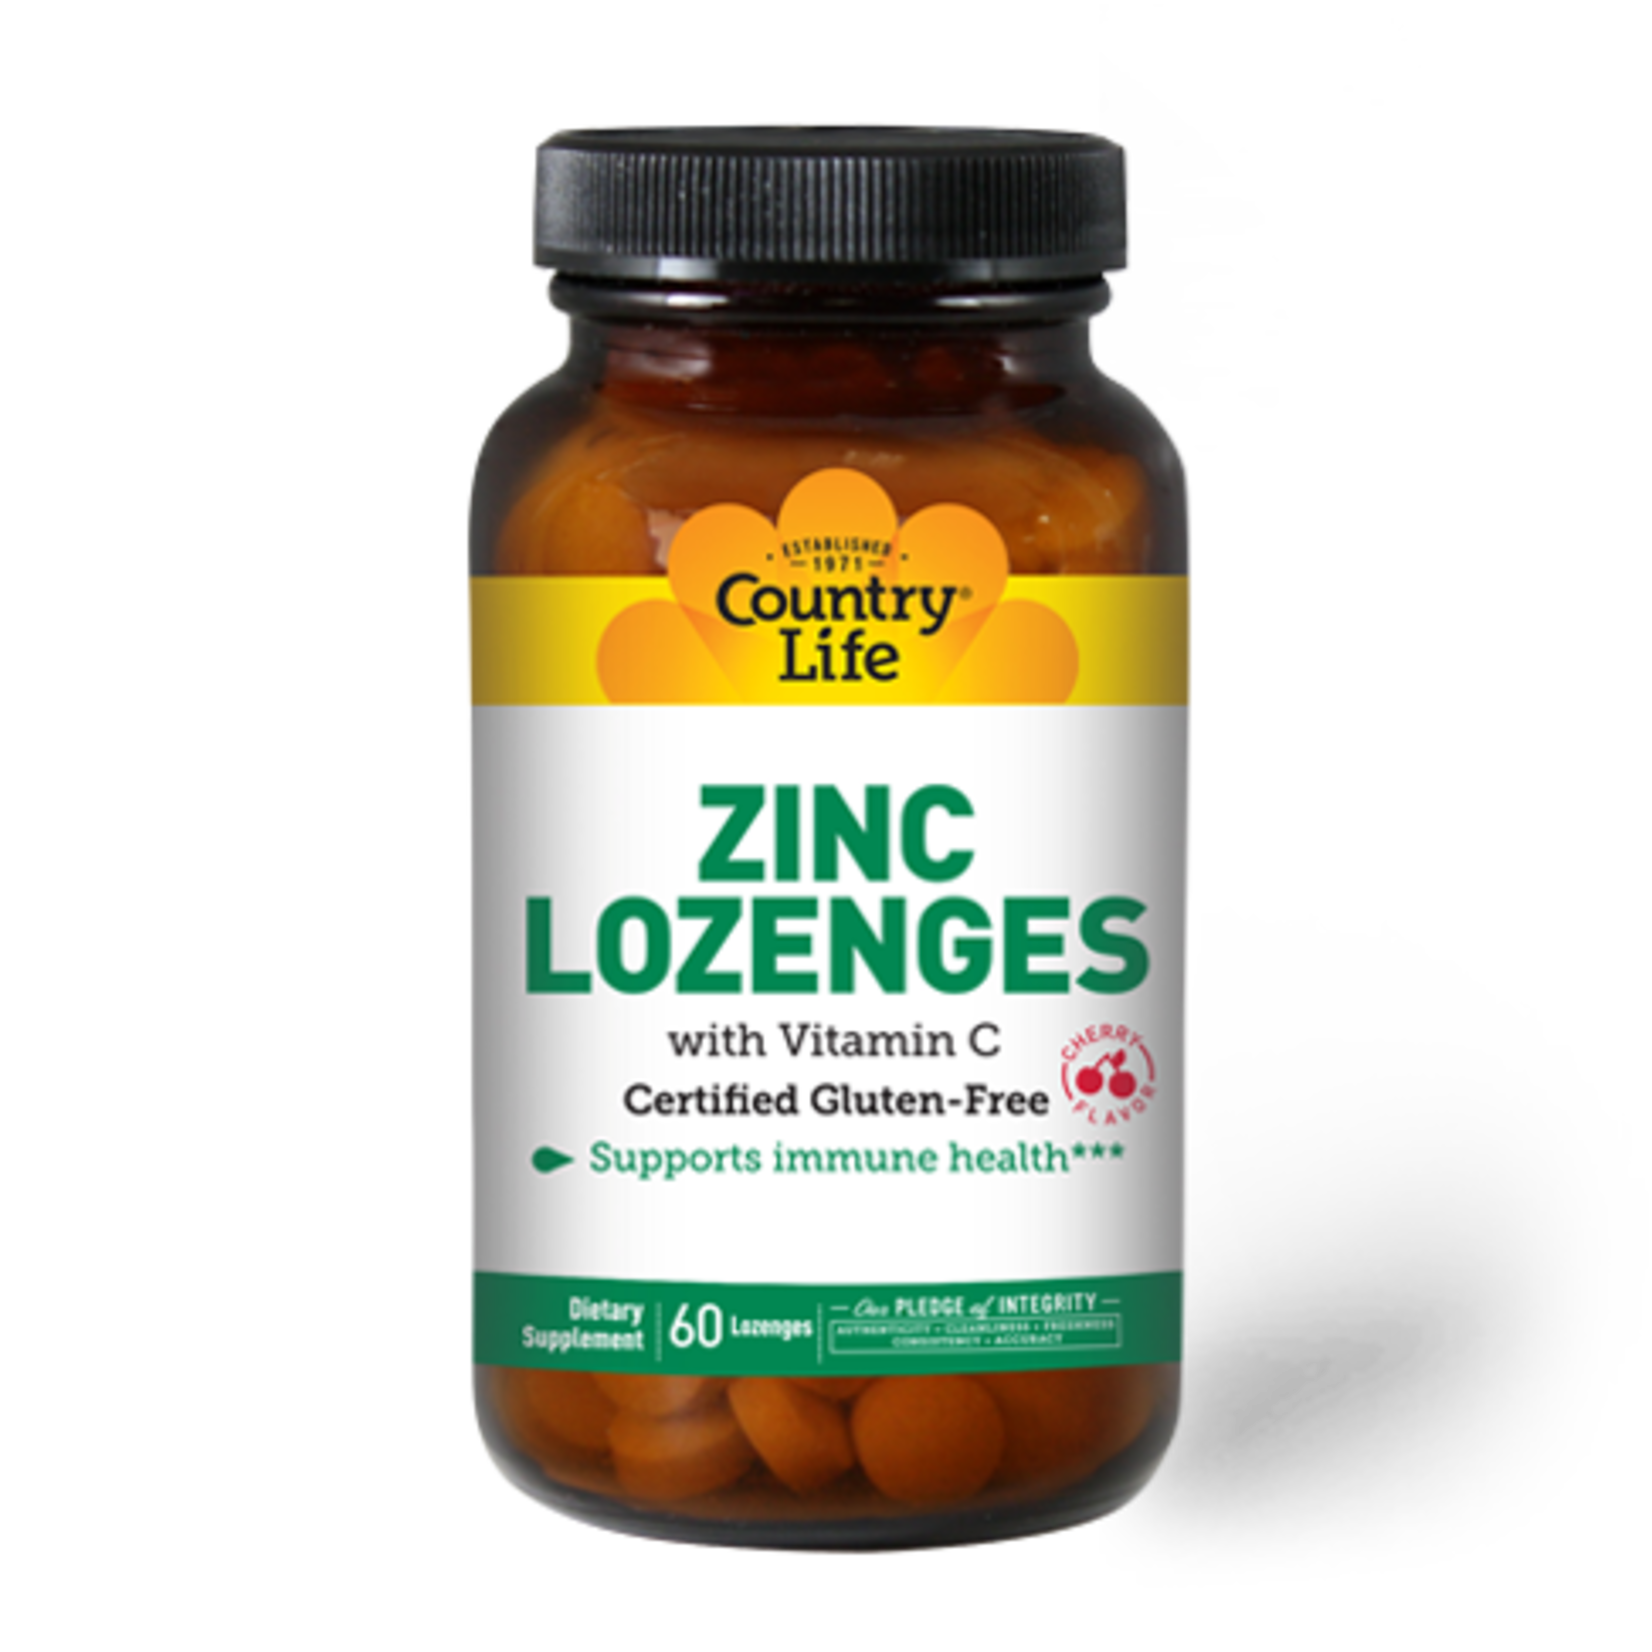 Country Life Country Life Cherry Zinc Lozenges 60